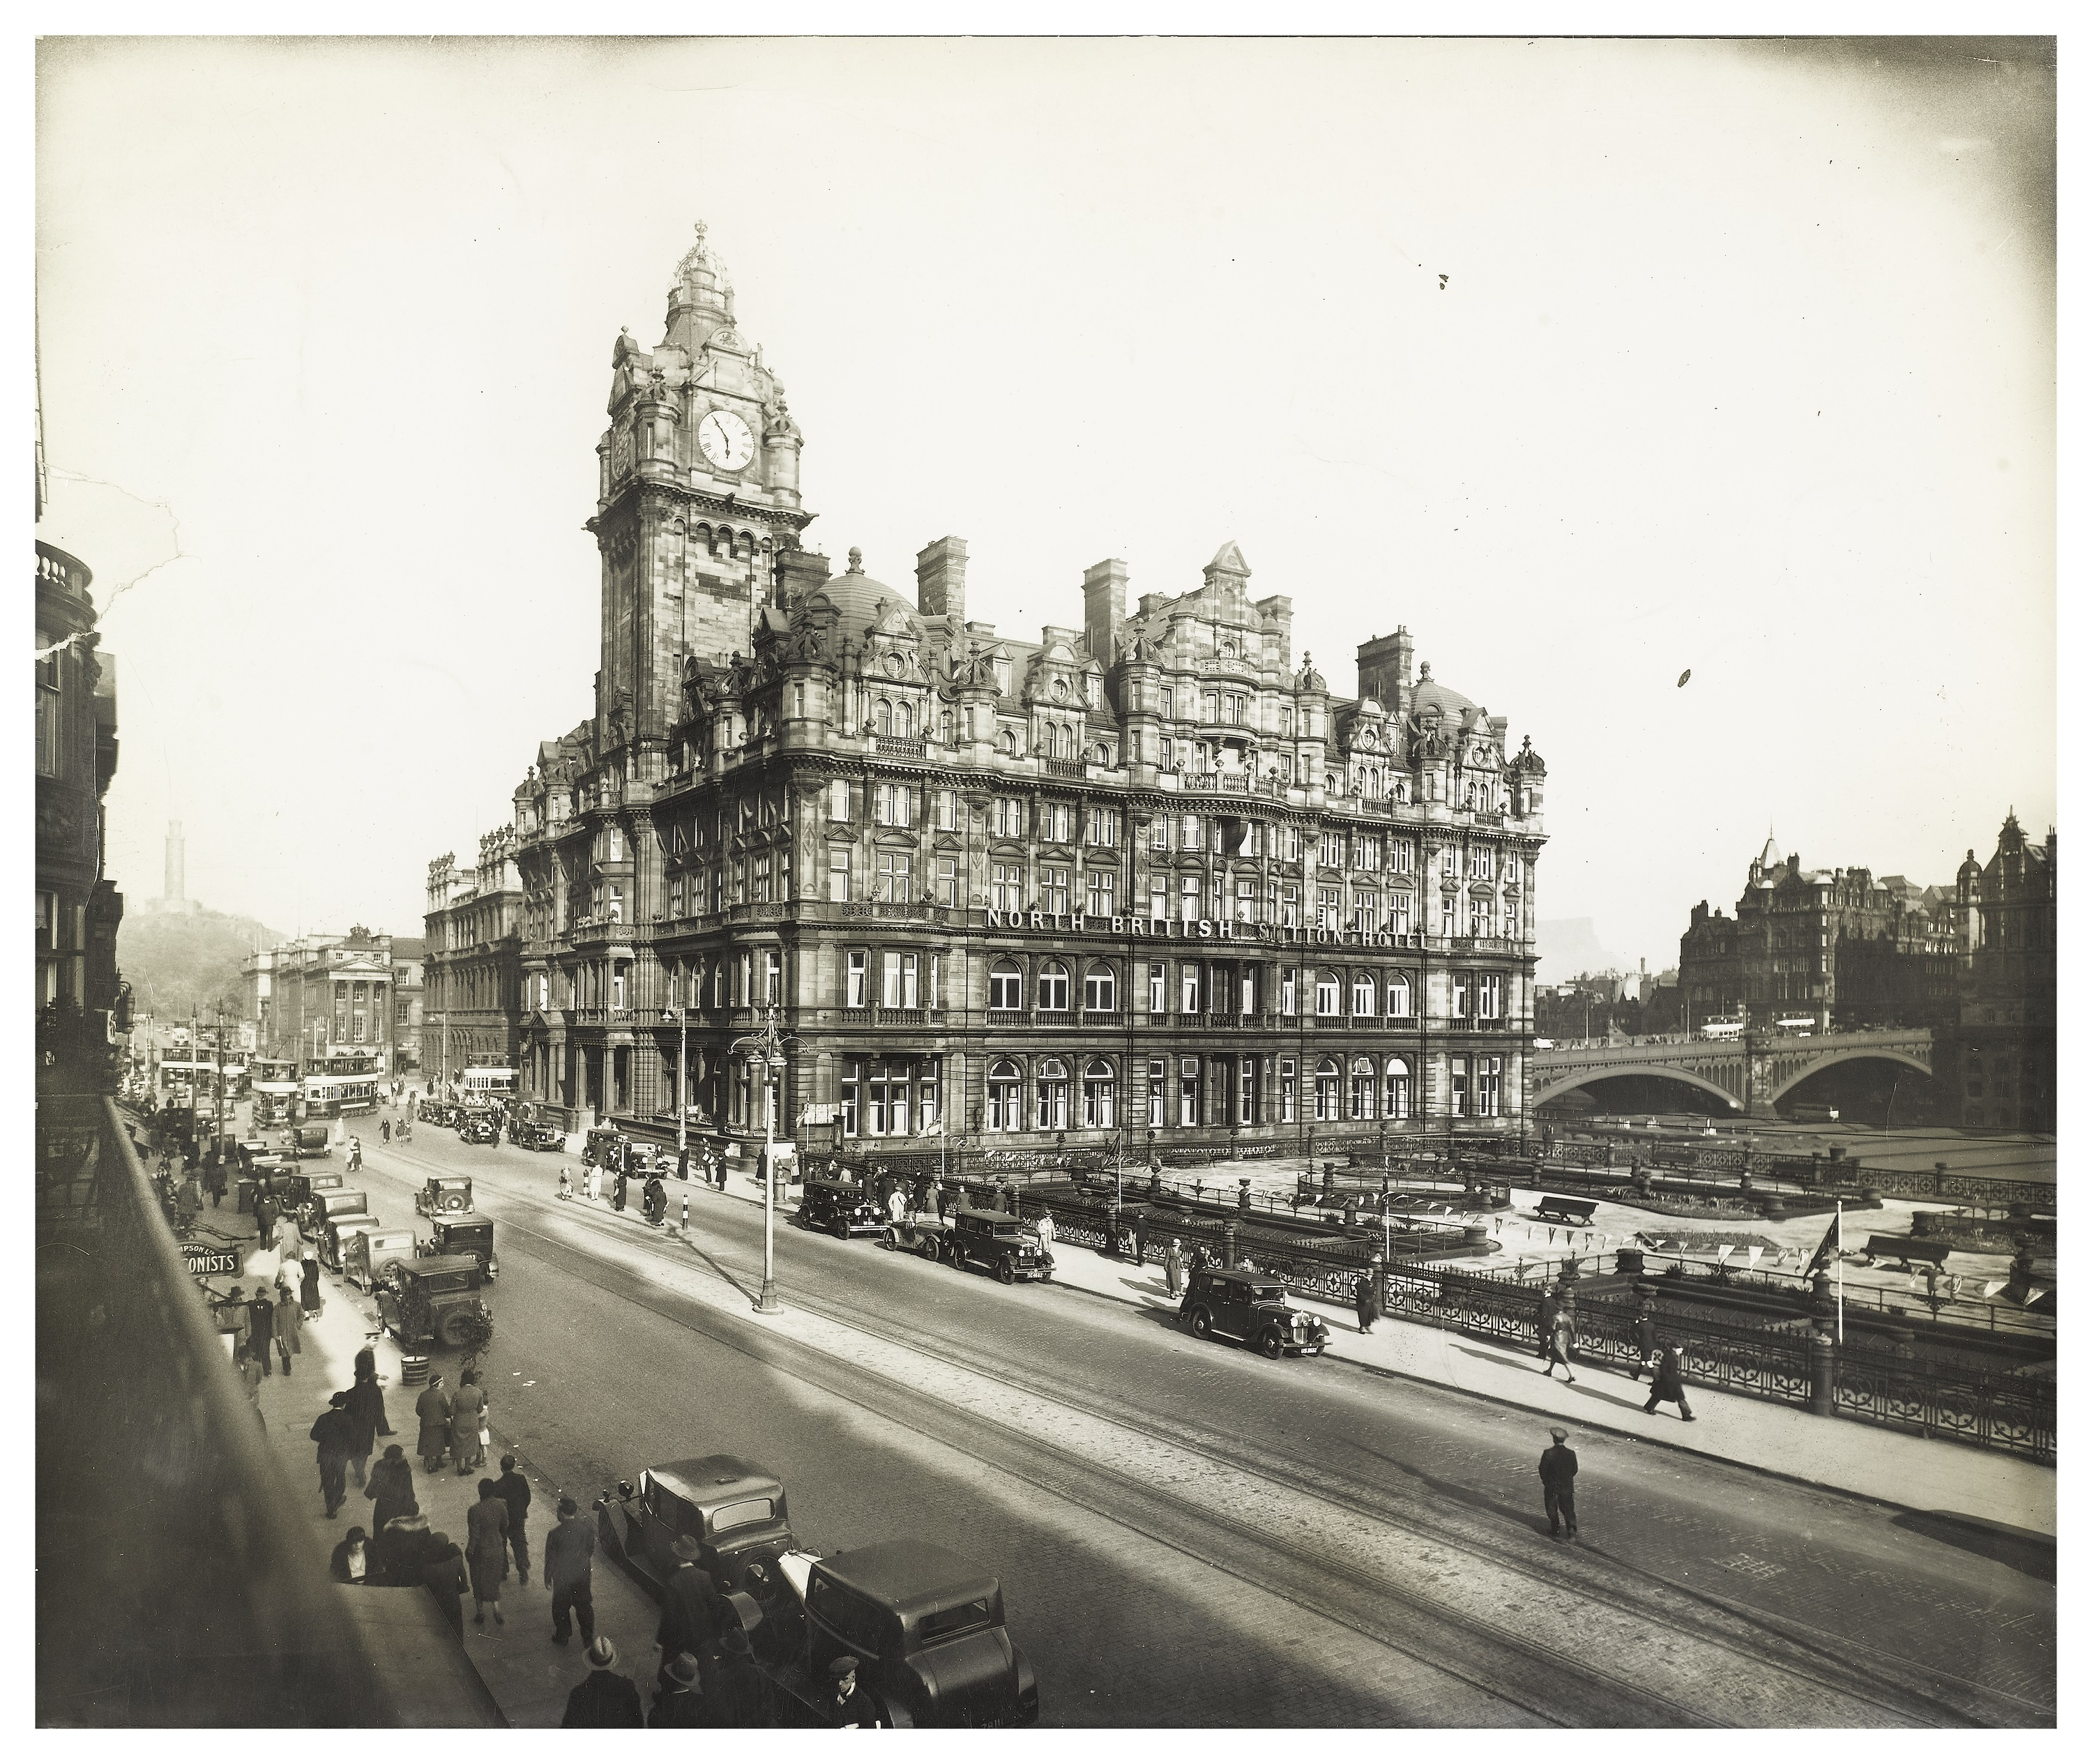 North British Station Hotel on Princes Street